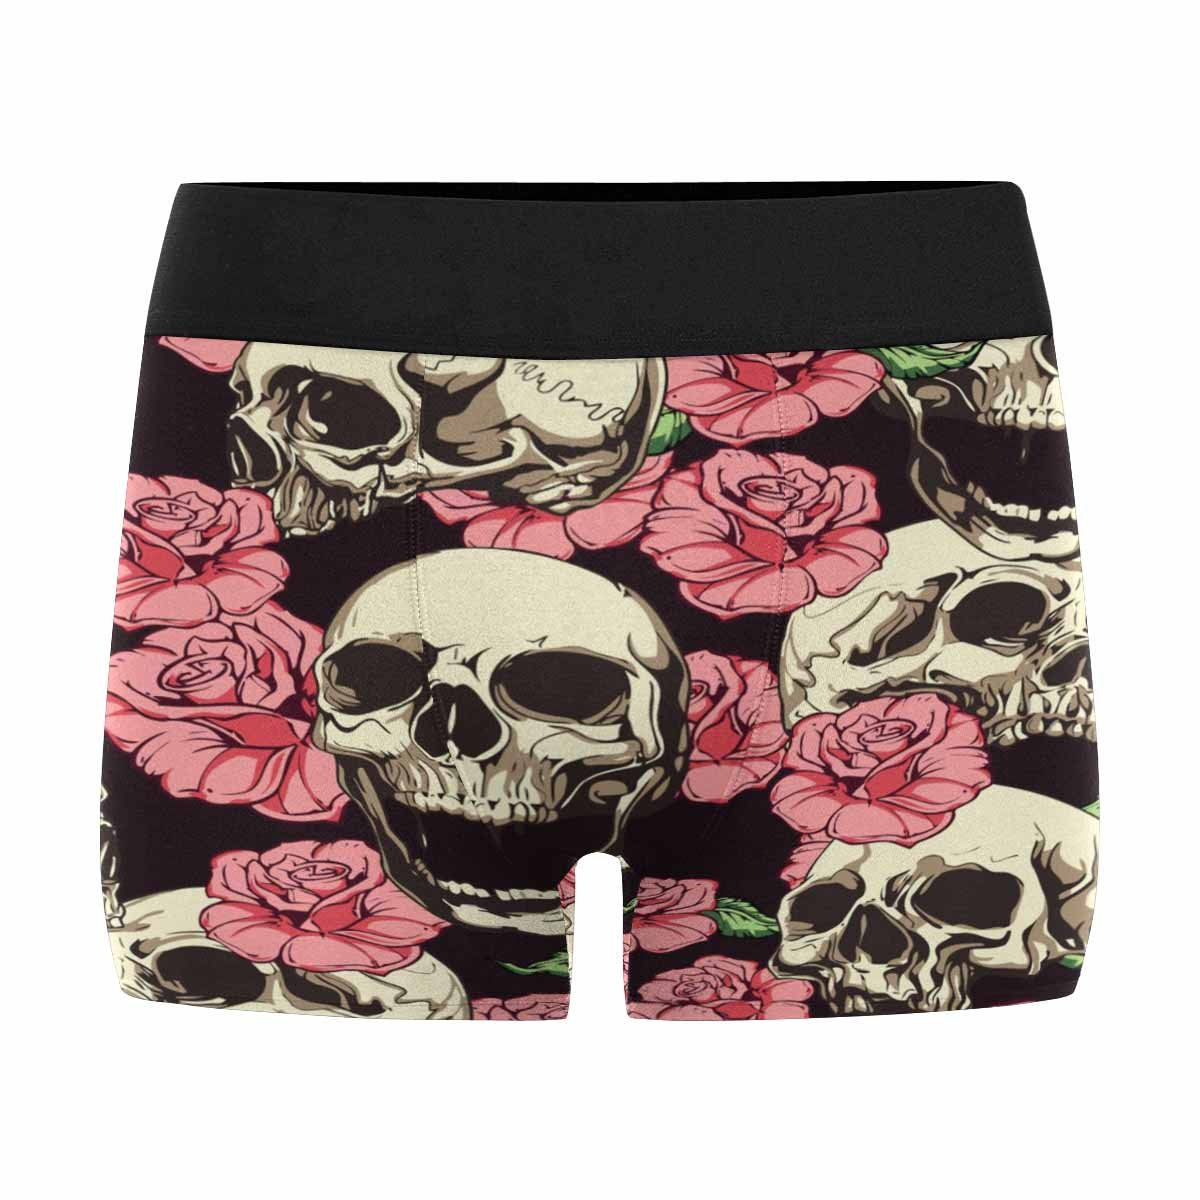 INTERESTPRINT Custom Mens Boxer Briefs Pattern of Skulls and Pinkred Roses on Dark Country House Image XS-3XL